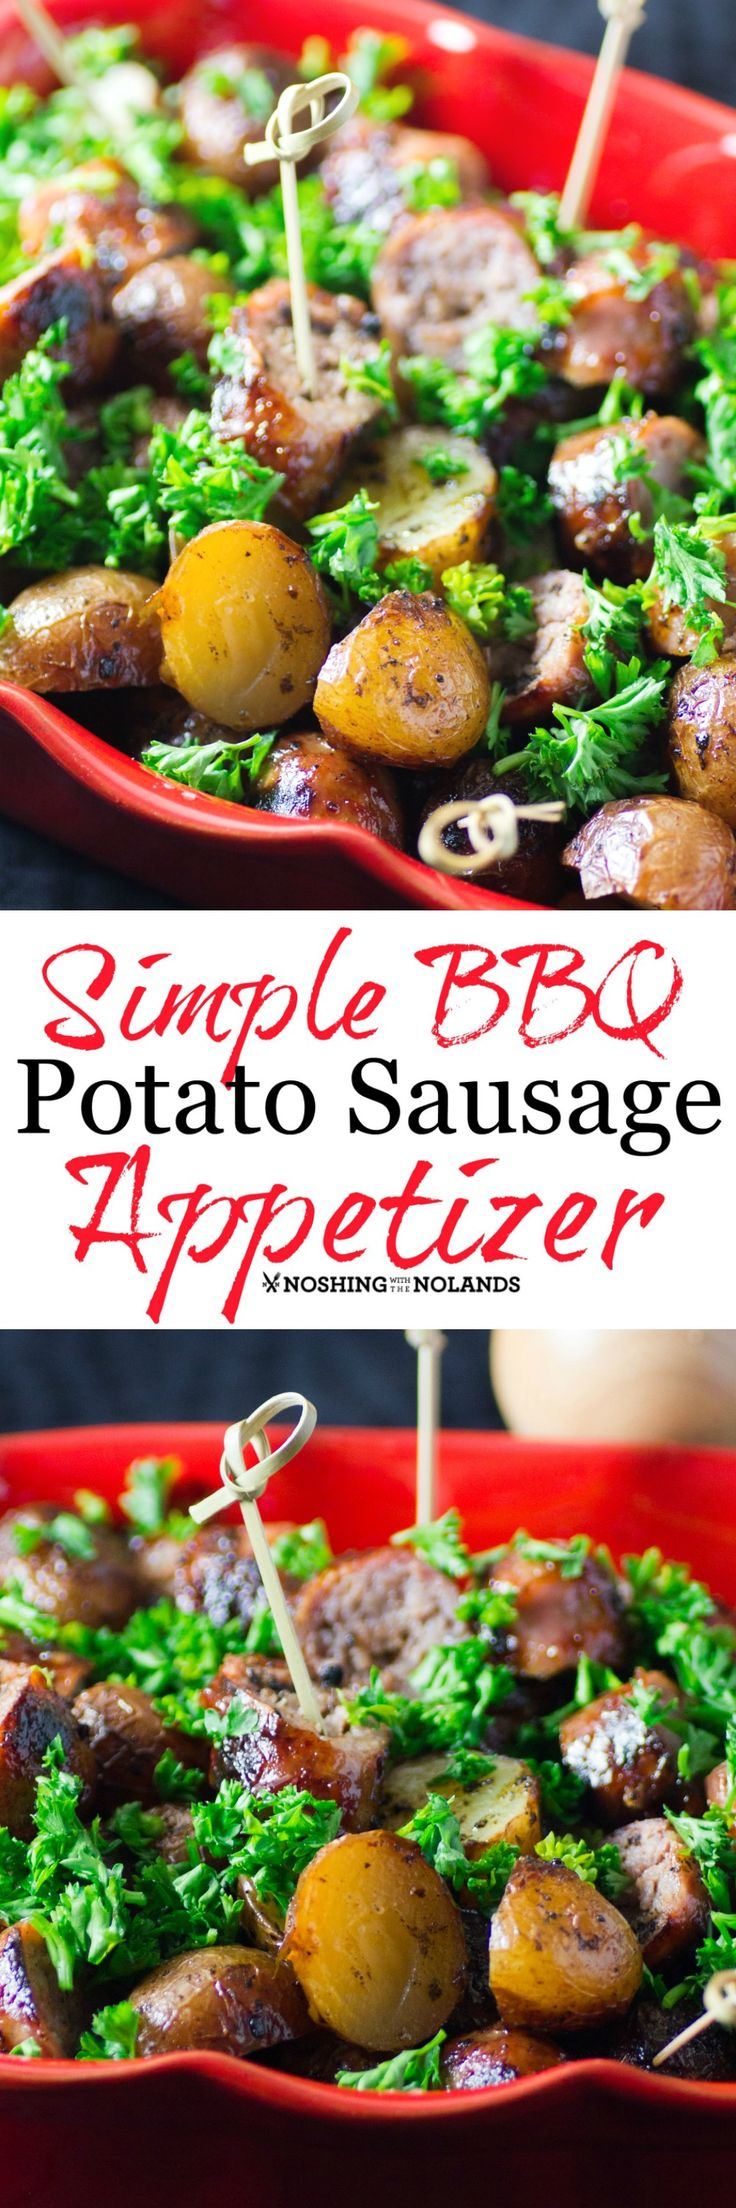 Simple BBQ Potato Sausage Appetizer by Noshing With The Nolands will be a new summer favorite. So easy for entertaining or just enjoying little creamer potatoes.